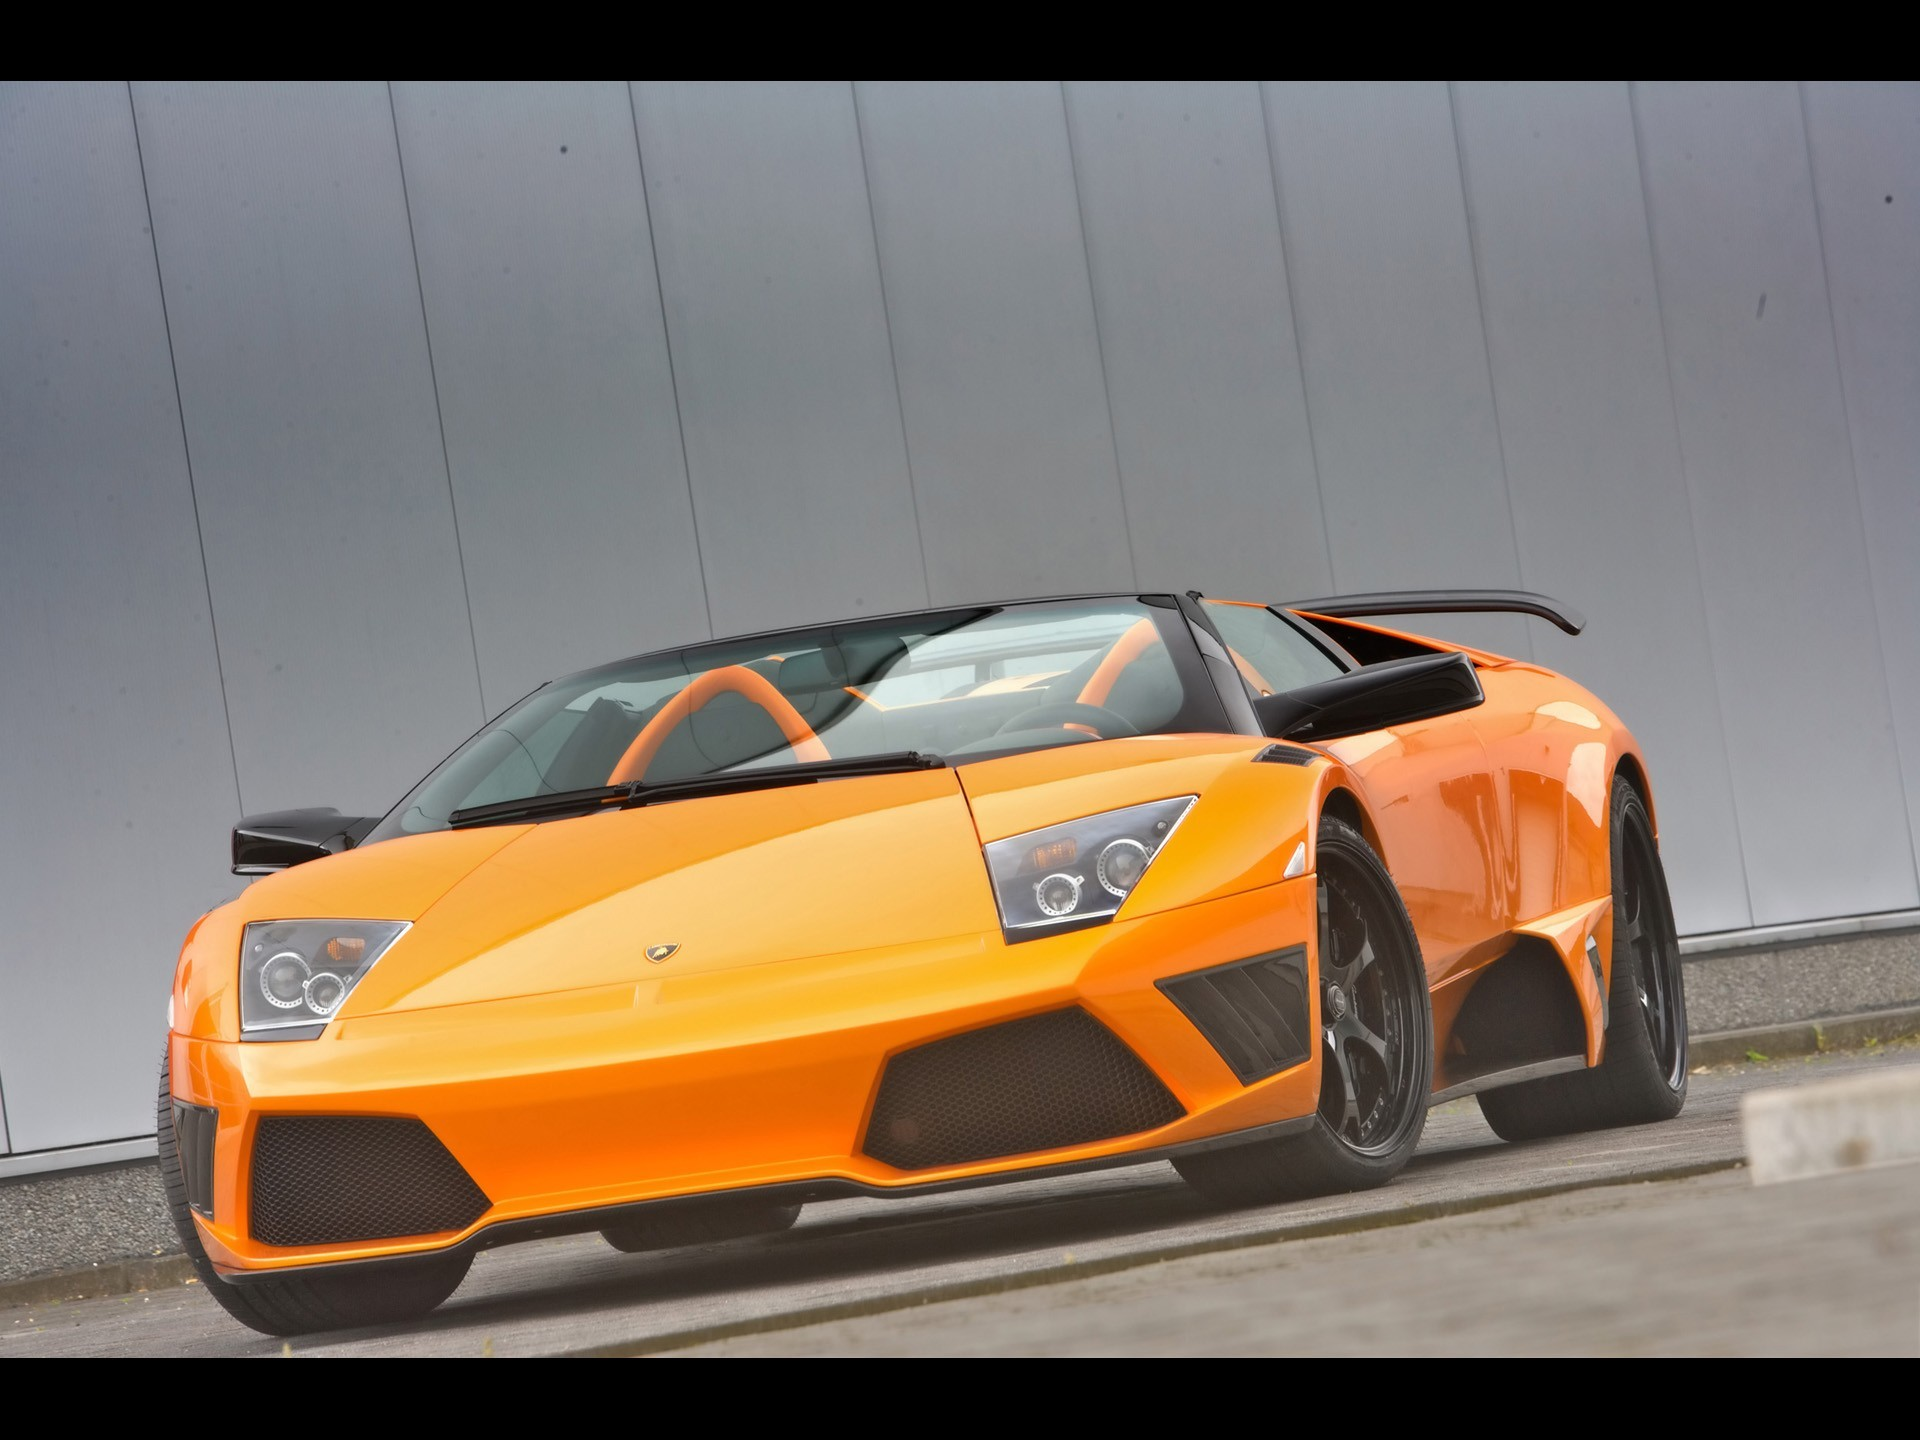 lamborghini murcielago orange cars HD Wallpaper